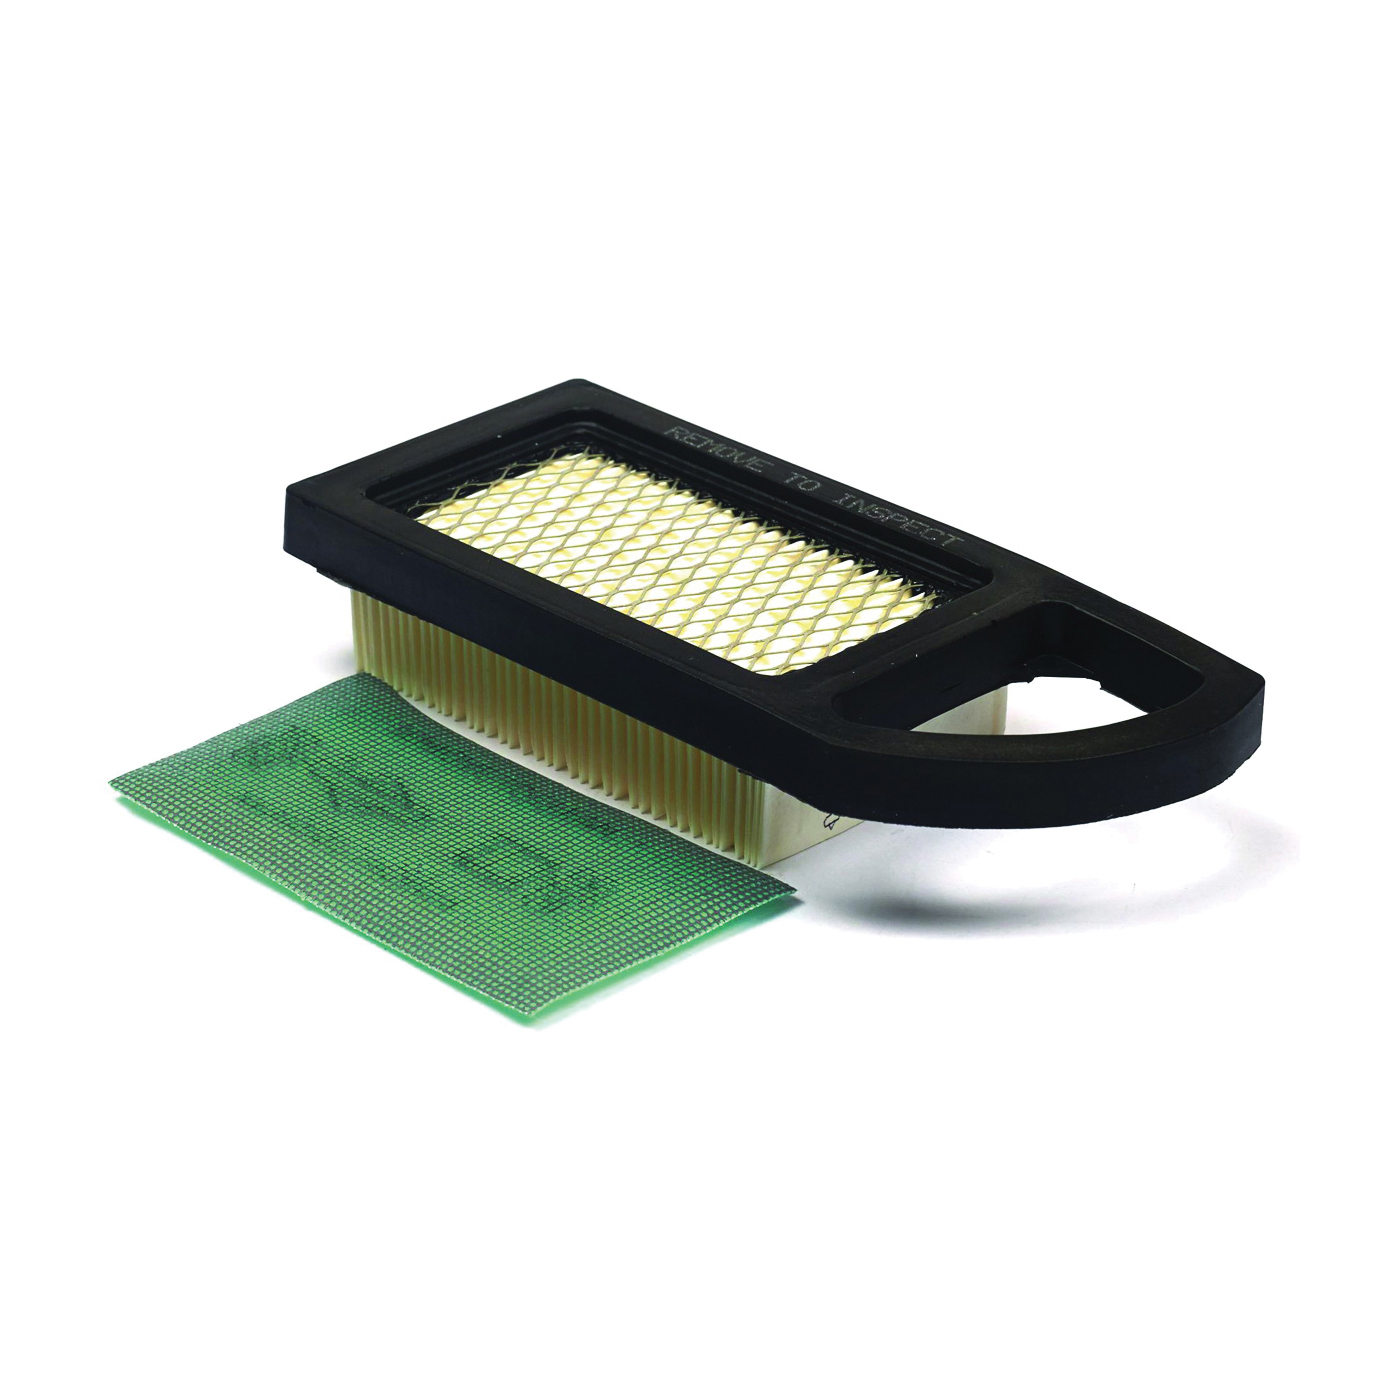 Picture of BRIGGS & STRATTON 5079K Air Filter with Pre-Cleaner, Paper Filter Media